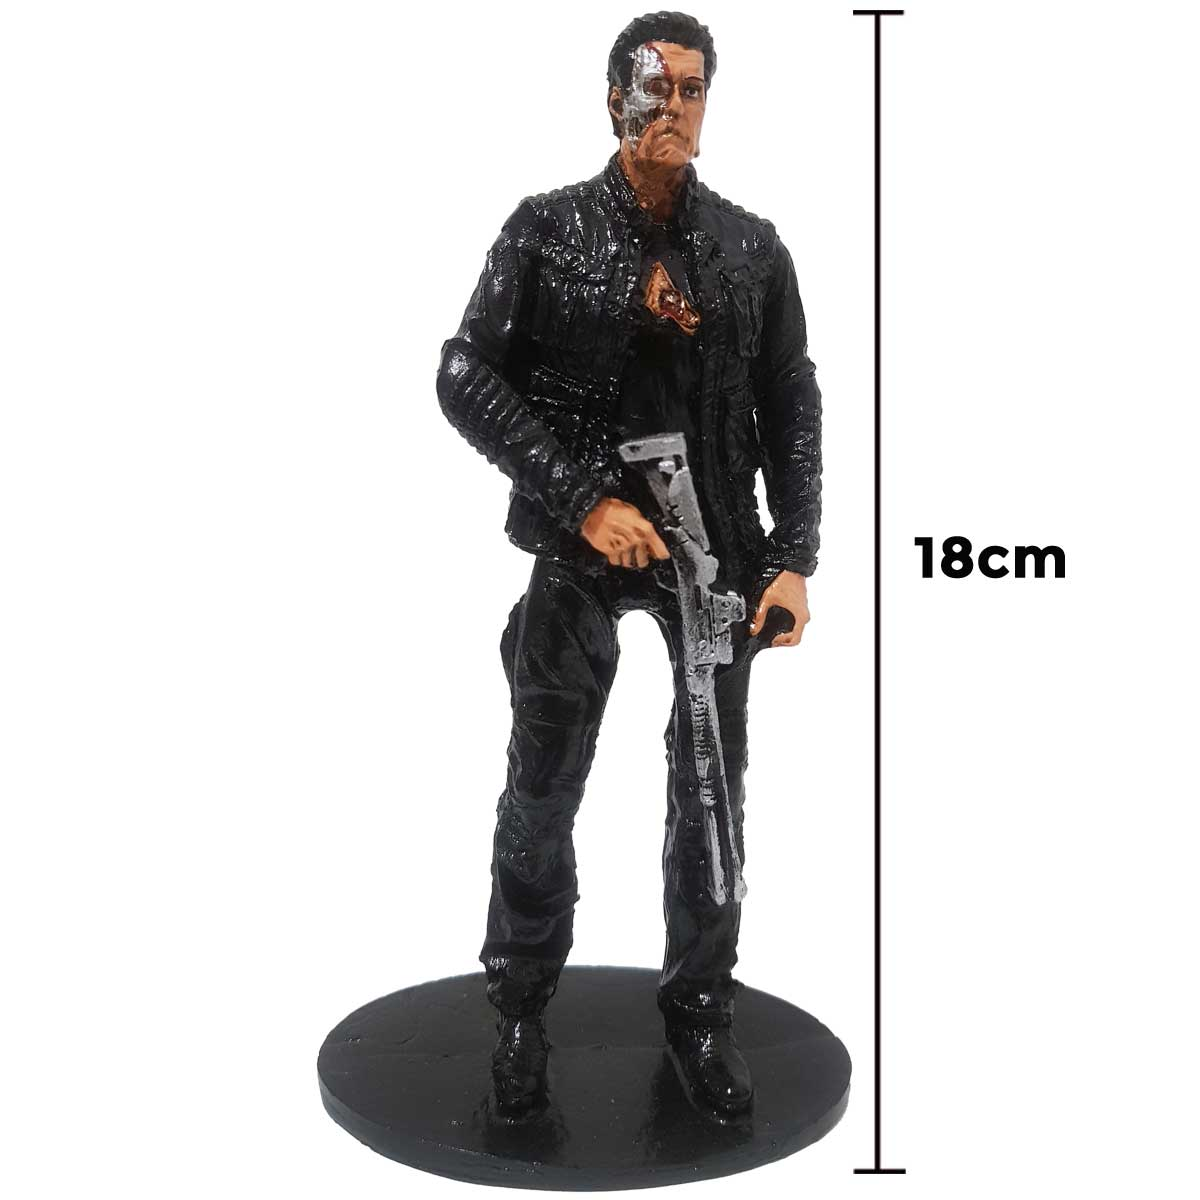 Exterminador do Futuro Action Figure 18cm